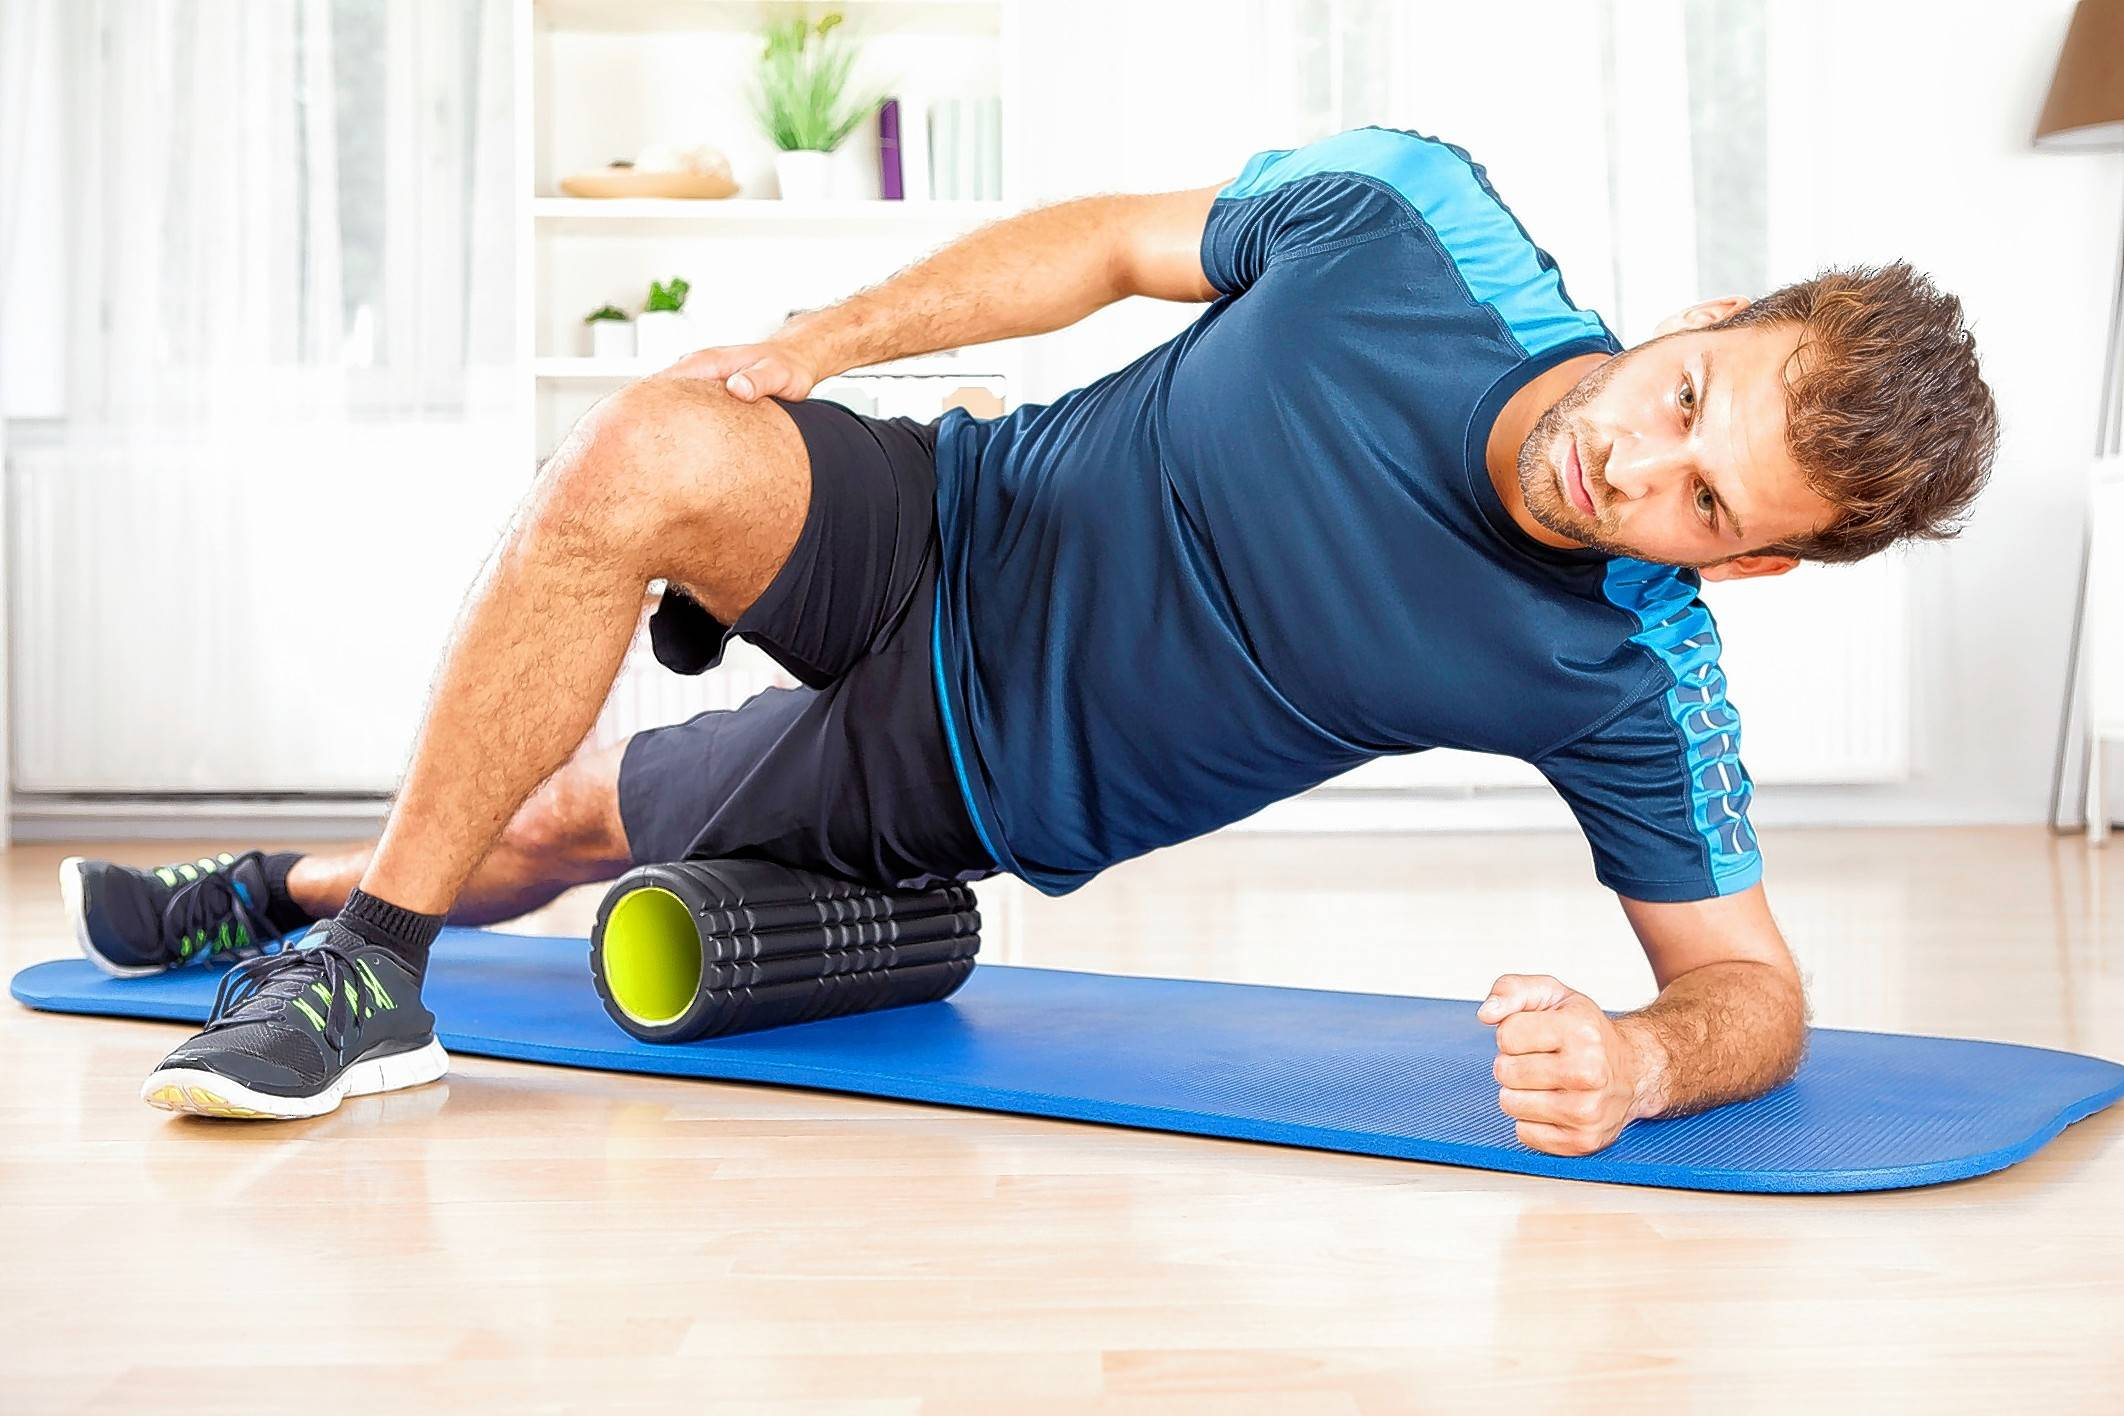 Couch to 5K Week 6 tip: The foam roller is a runner's best friend